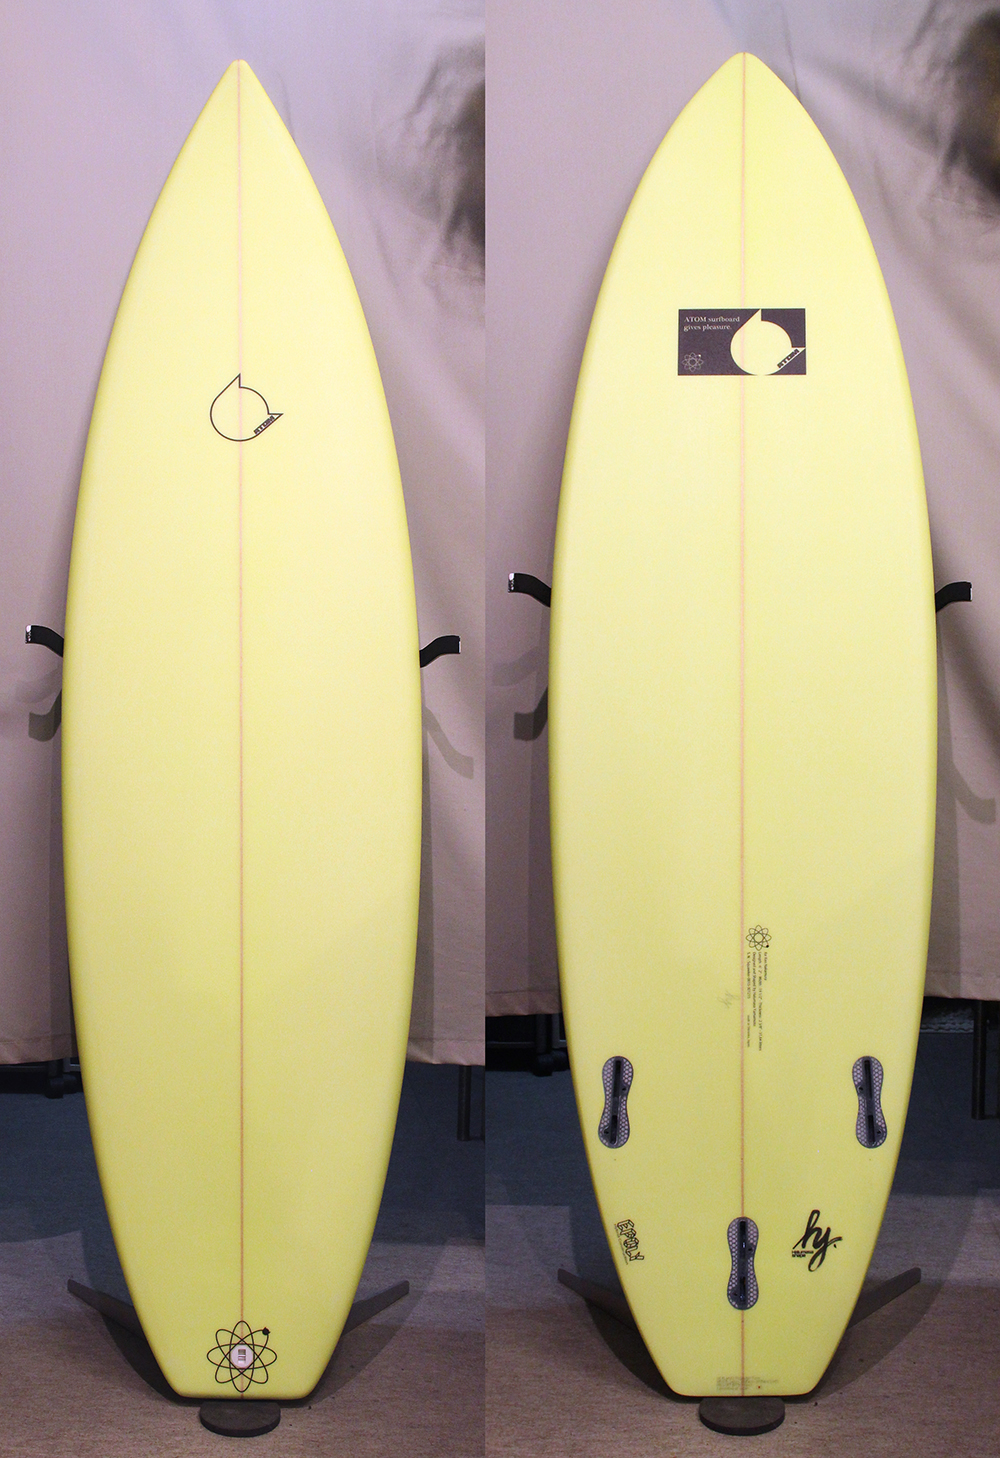 ATOM Surfboard Squawker model with EPOLY